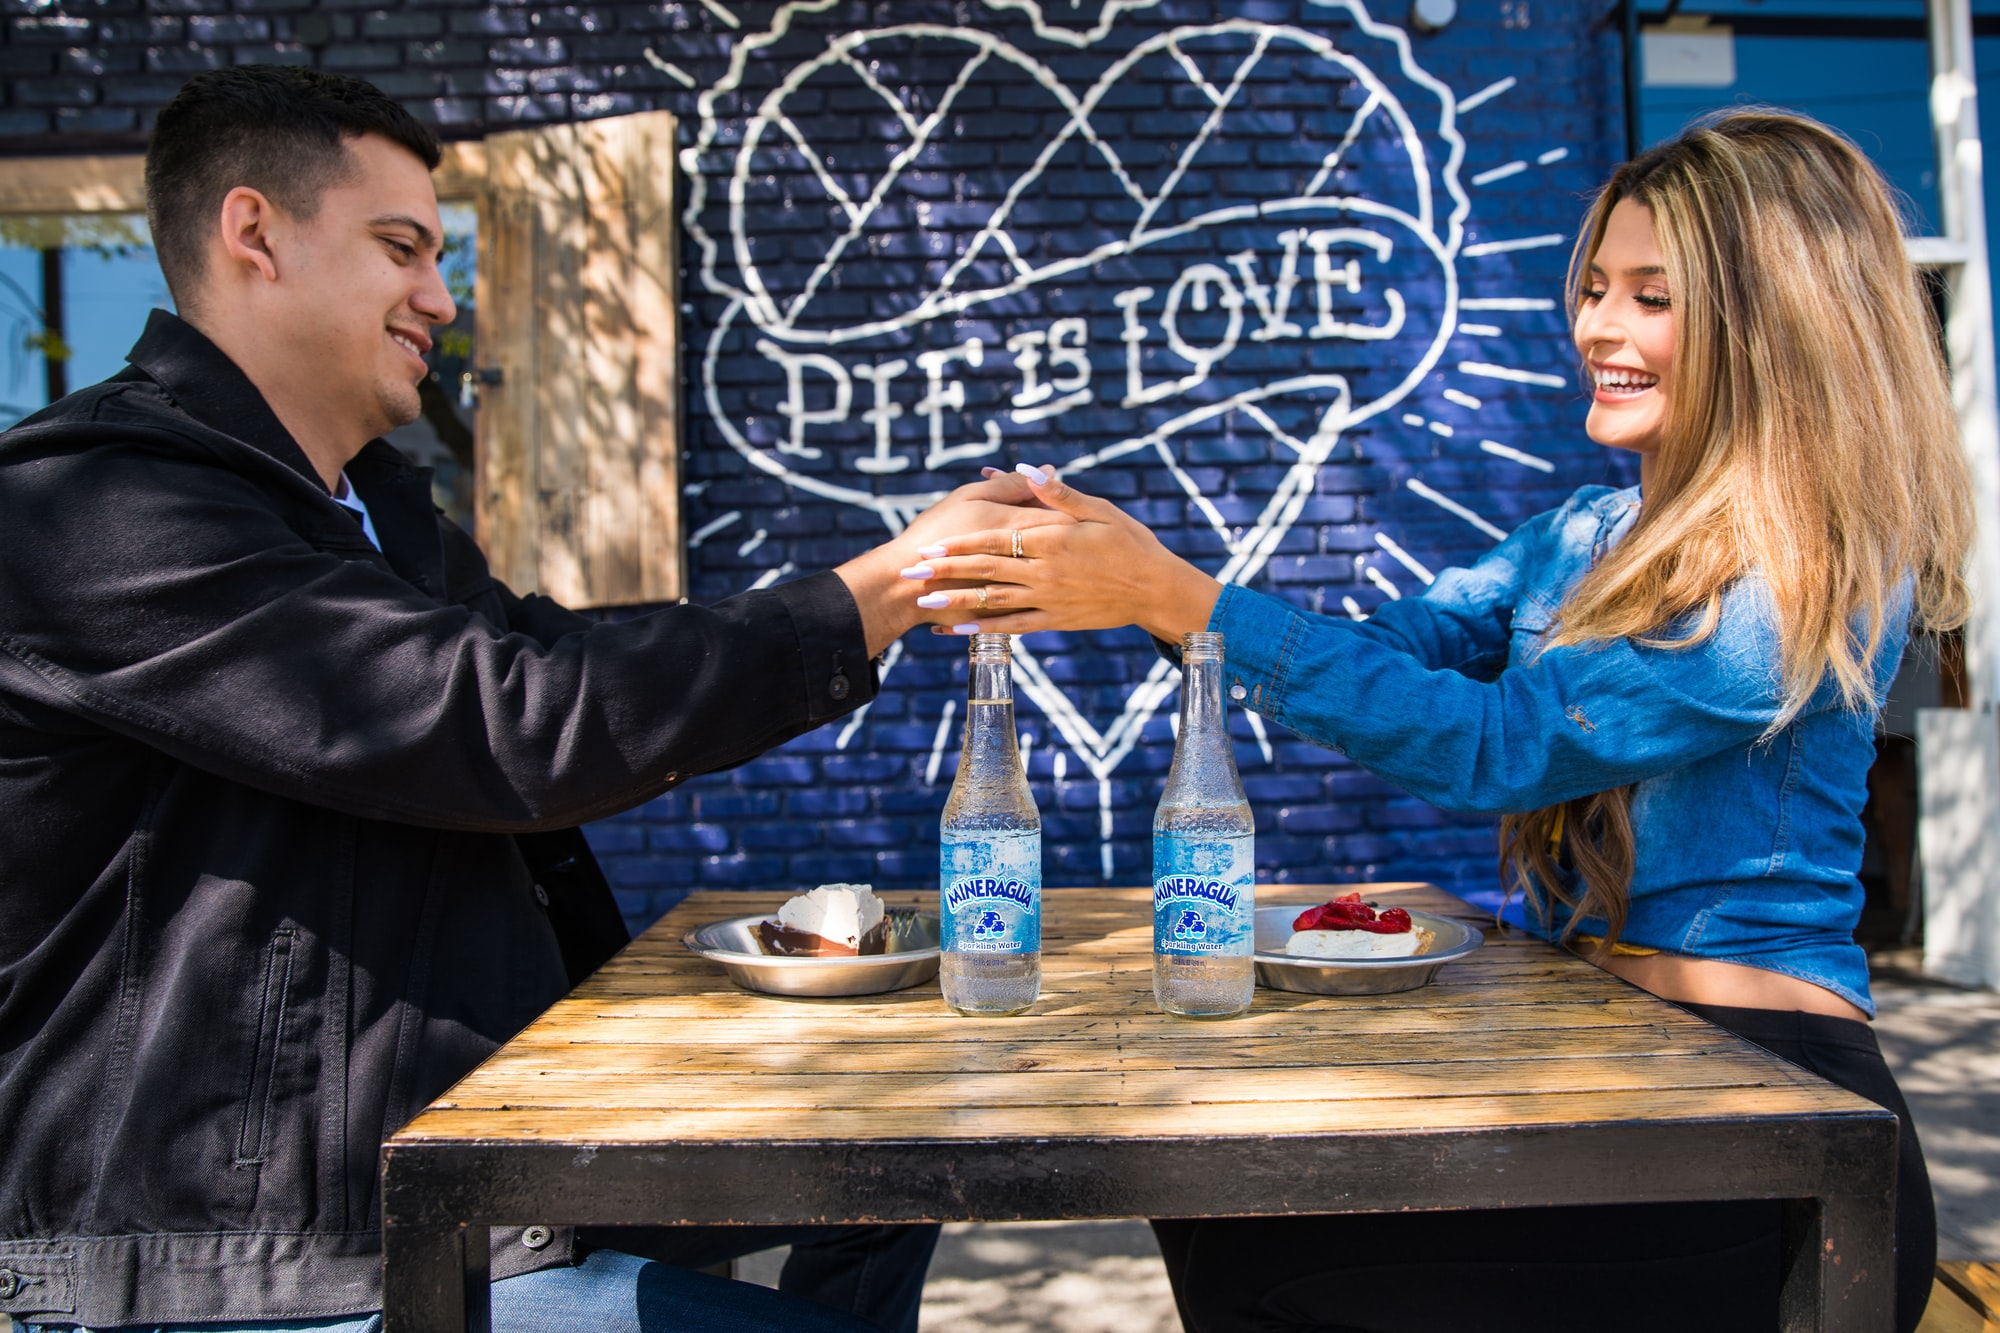 Mineragua Sparkling Water Love and Pie Date